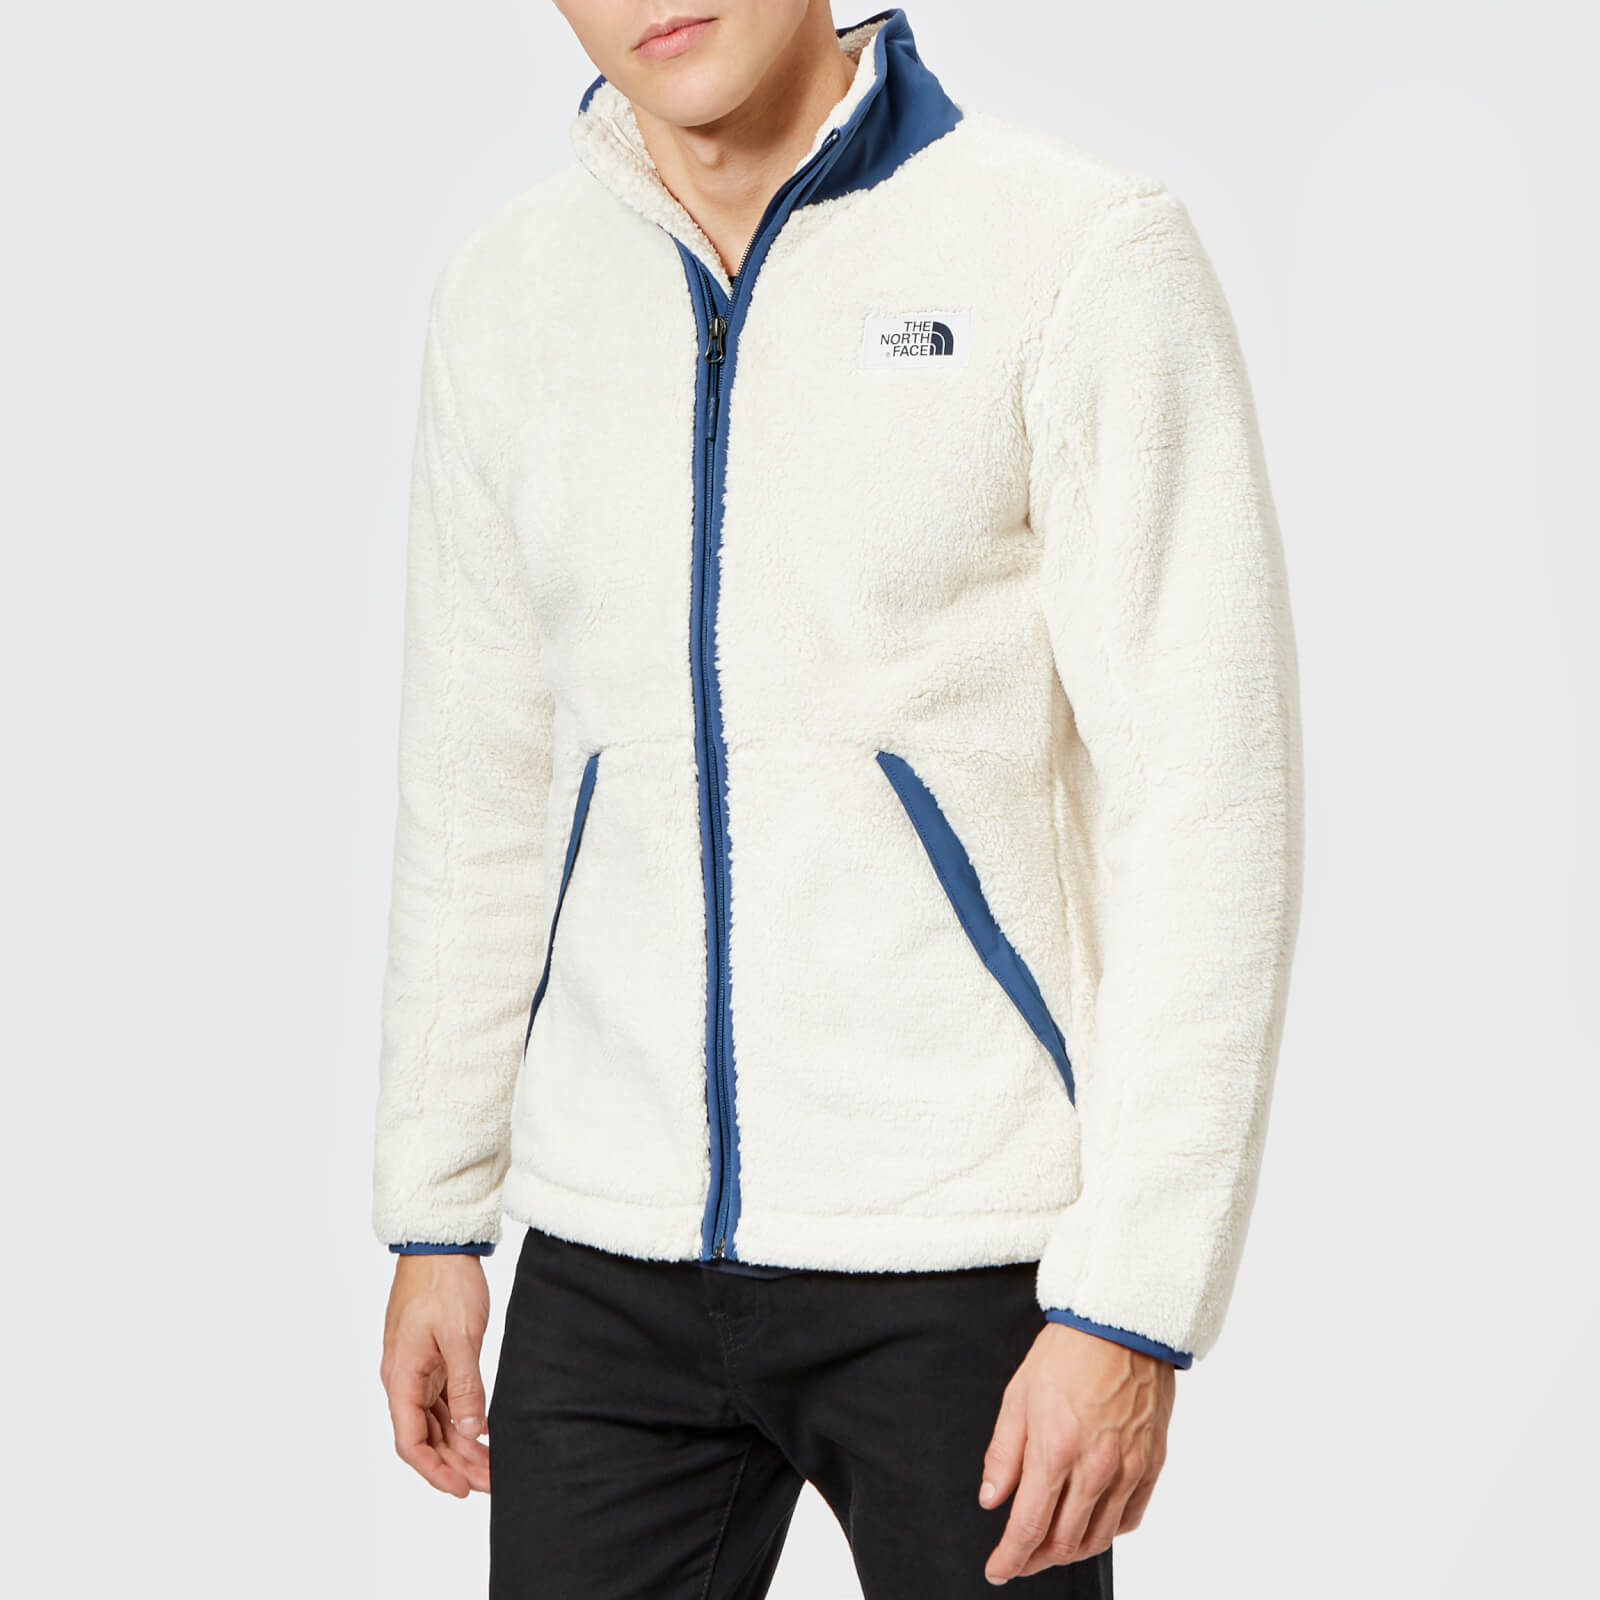 19b9b80a2c07 ... The North Face Men s Campshire Full Zip Pile Fleece - Vintage White Shady  Blue